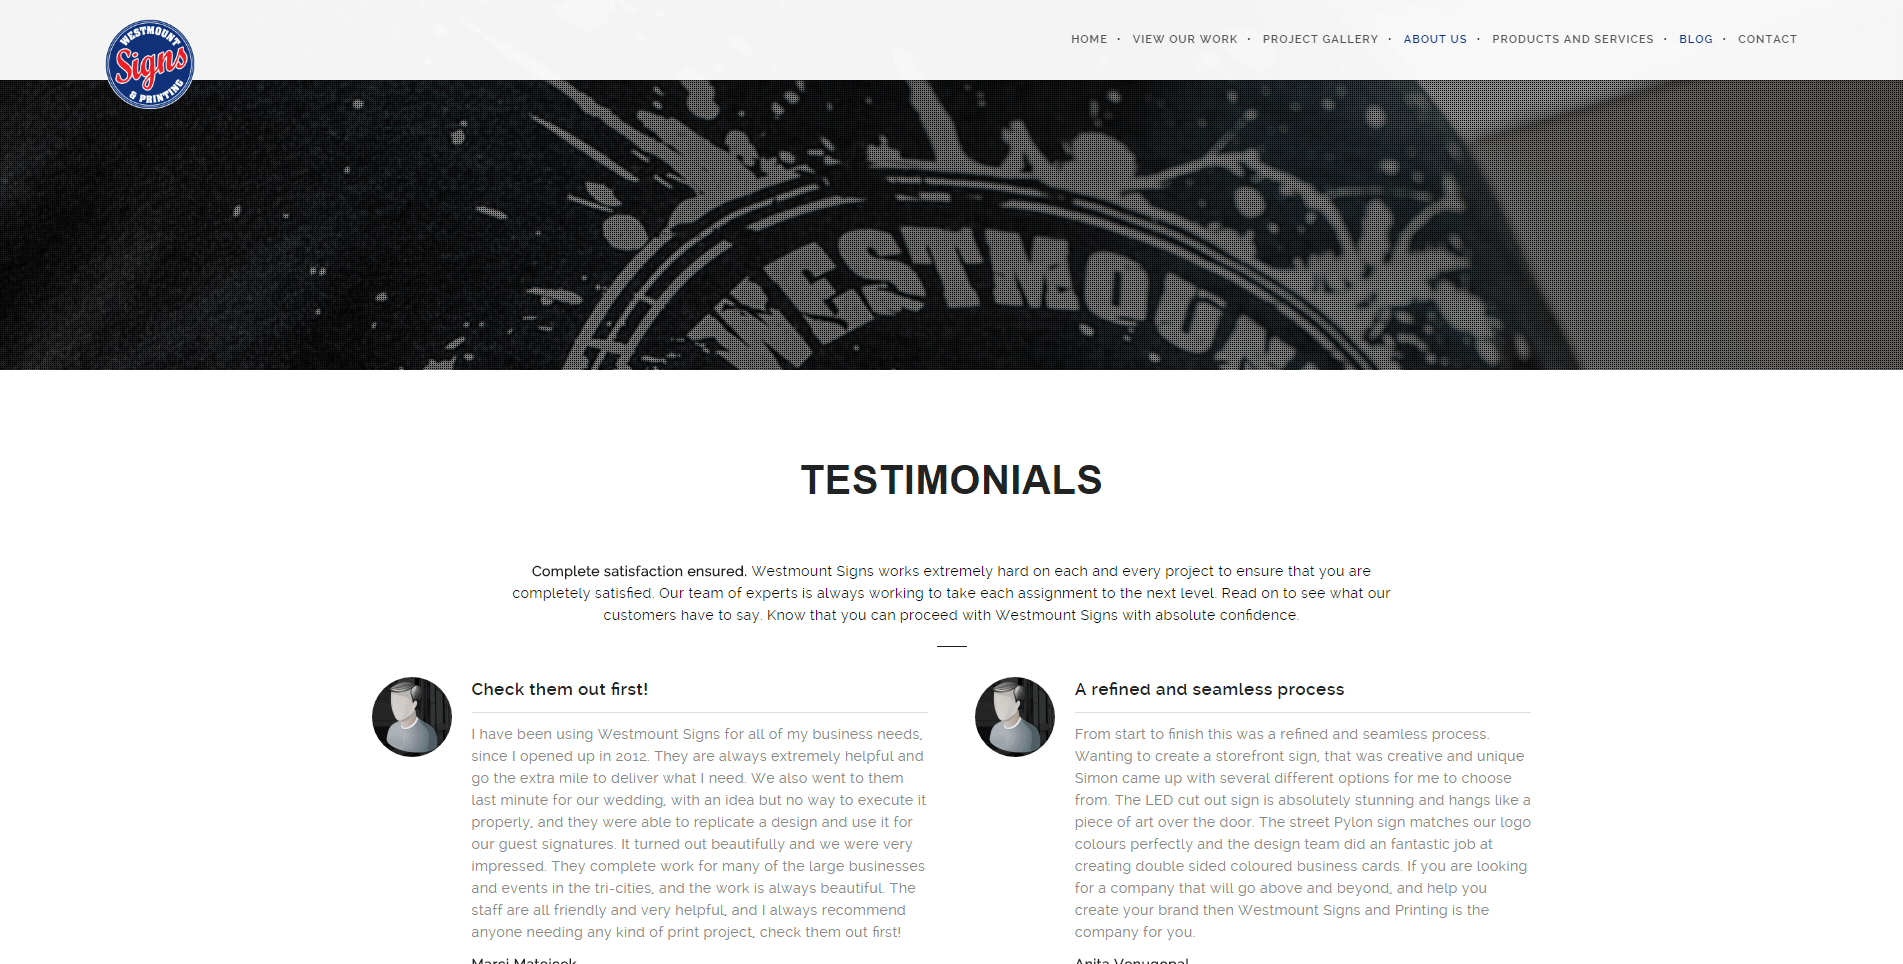 Westmount Signs testimonials build trust